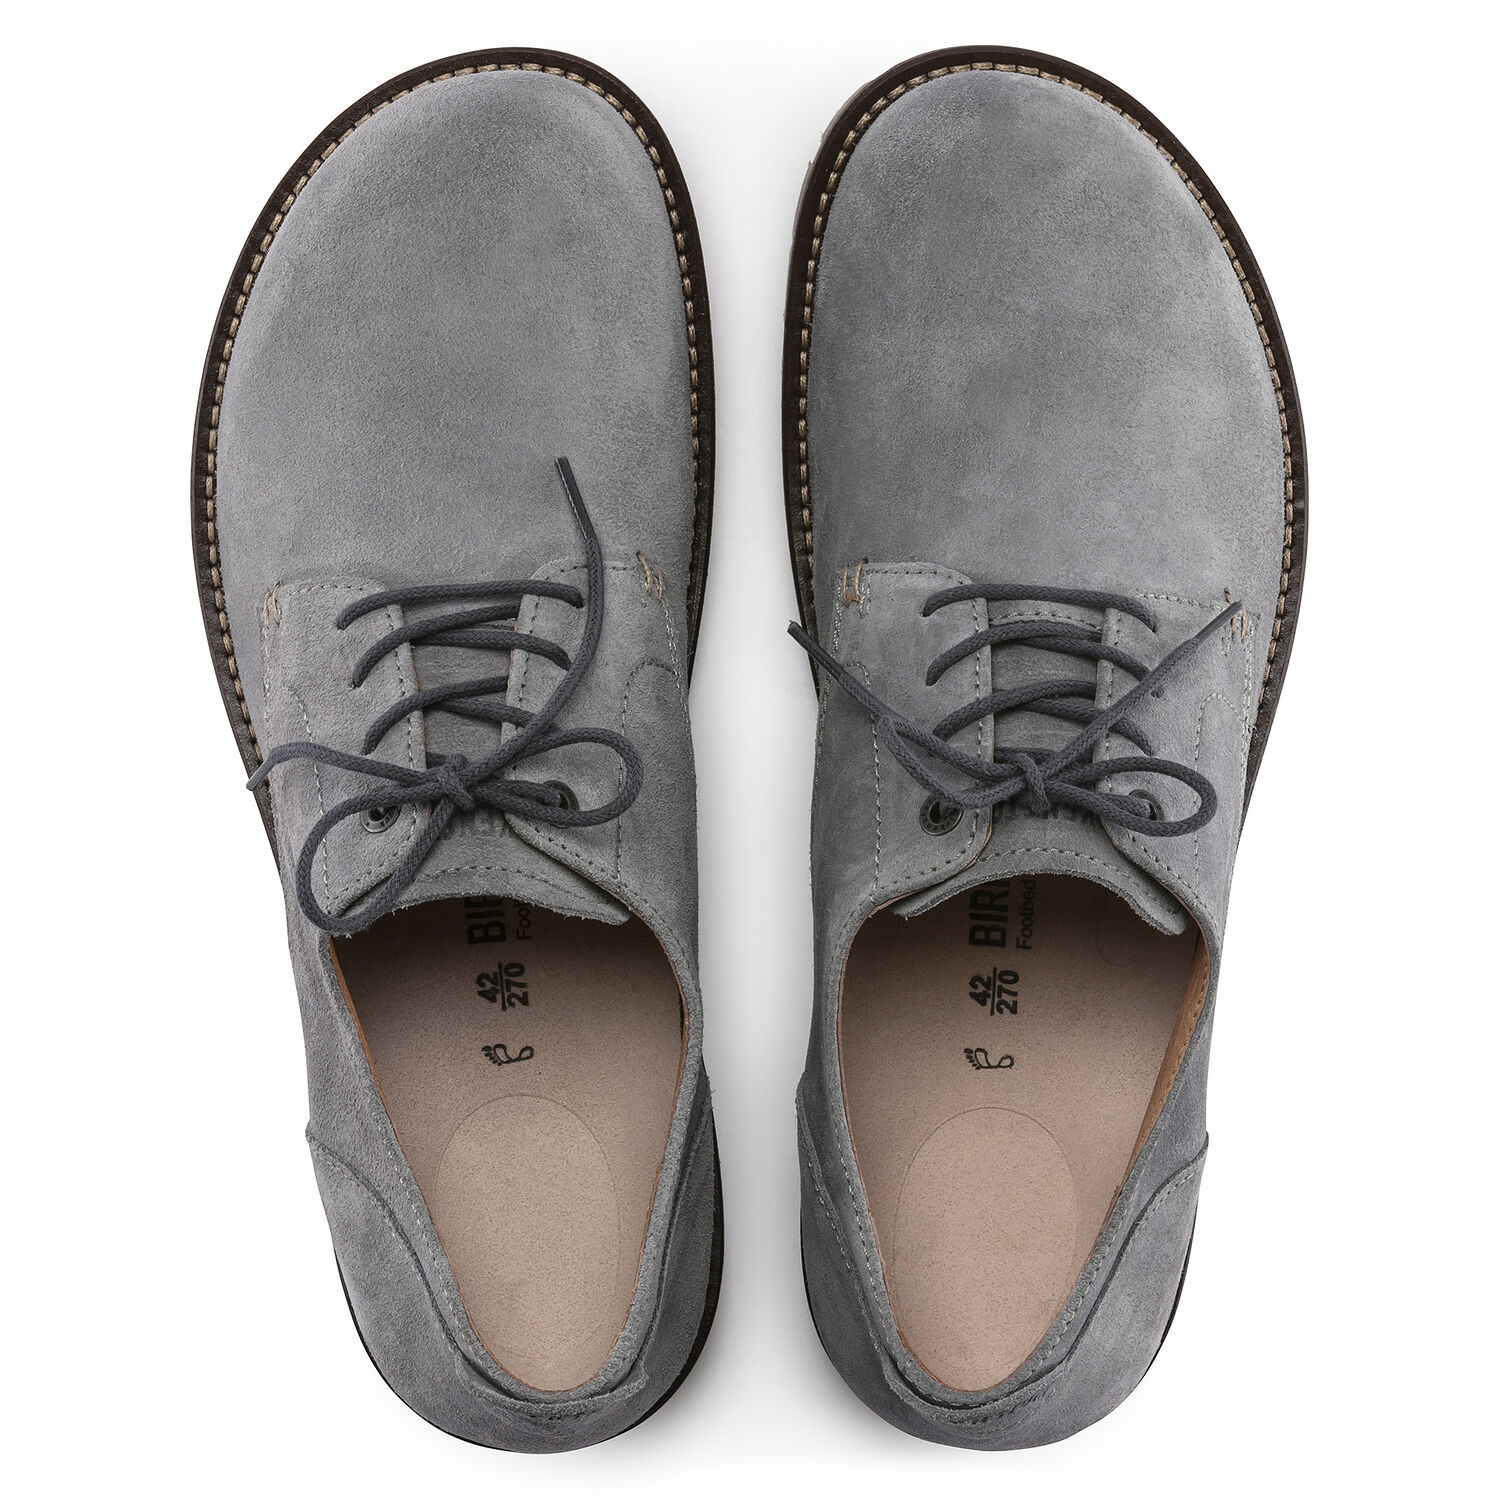 Gilford Suede Leather